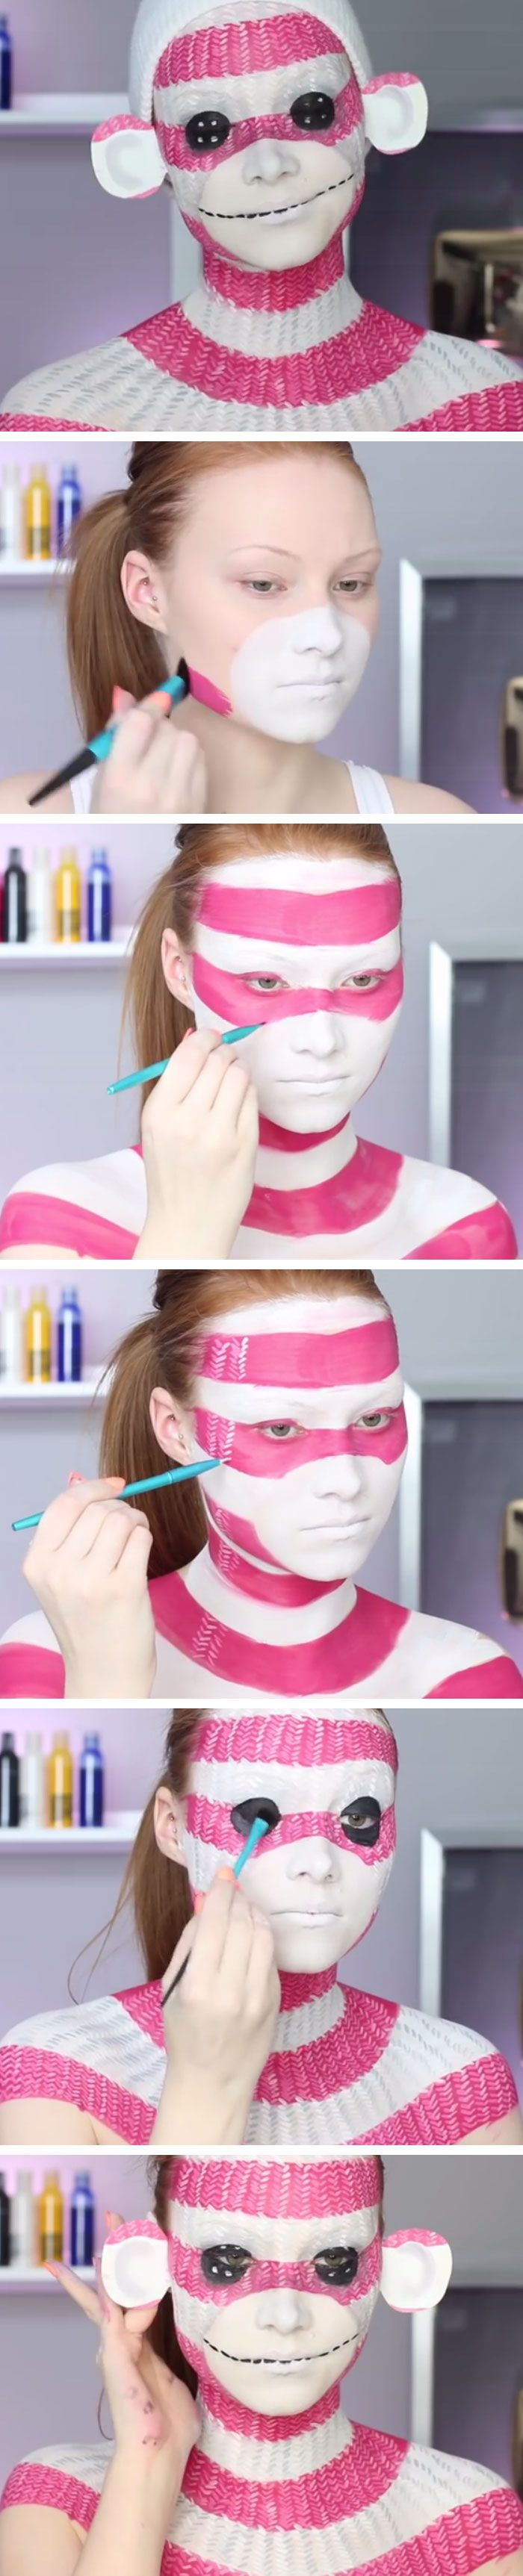 Sock Monkey Makeup Tutorial